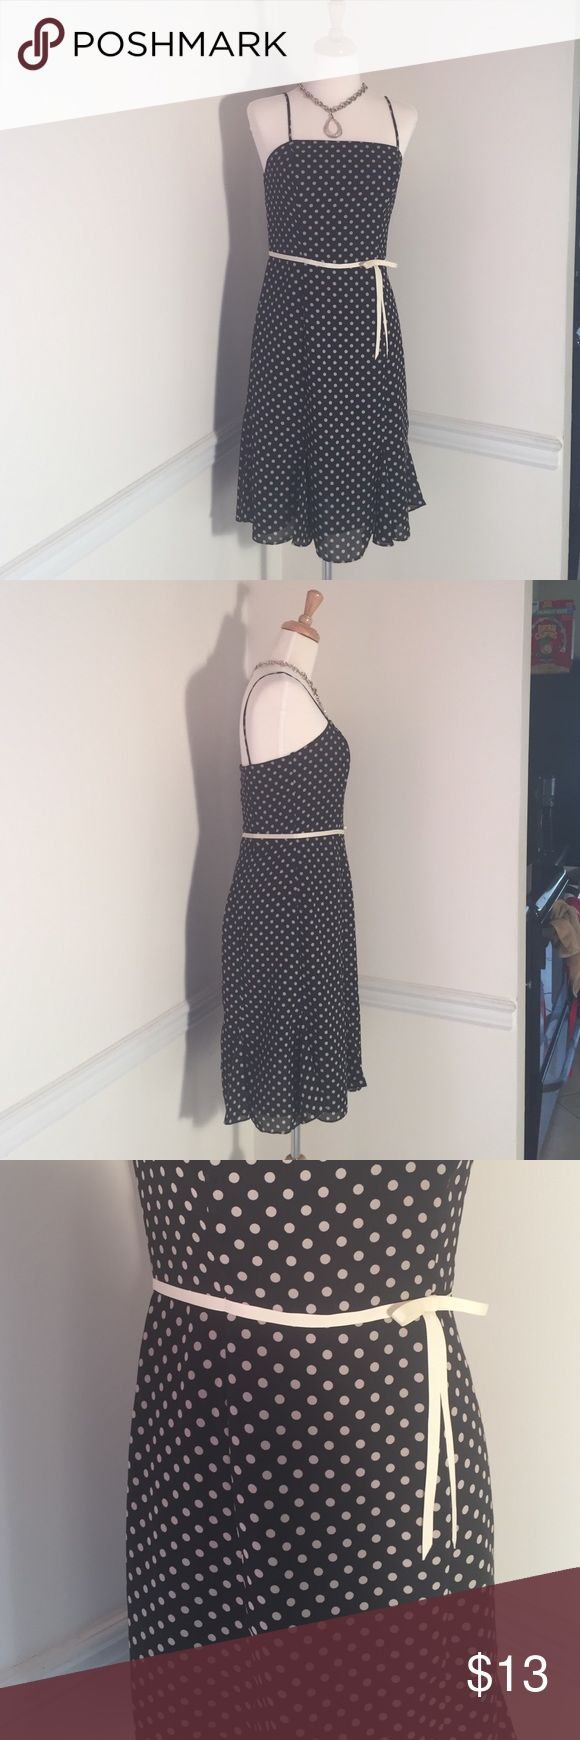 """Size 6 CDC vintage style polka dot dress This dress is sheer and super elegant. Whether for the office paired with a sweater or for a night out on the town this dress is sure to impress. Black with cream polka dots. Bow detail at the waist. 36"""" from top of strap to bottom of dress. 16 """" from pit to pit. 15 1/2"""" waist. cdc Dresses Strapless"""